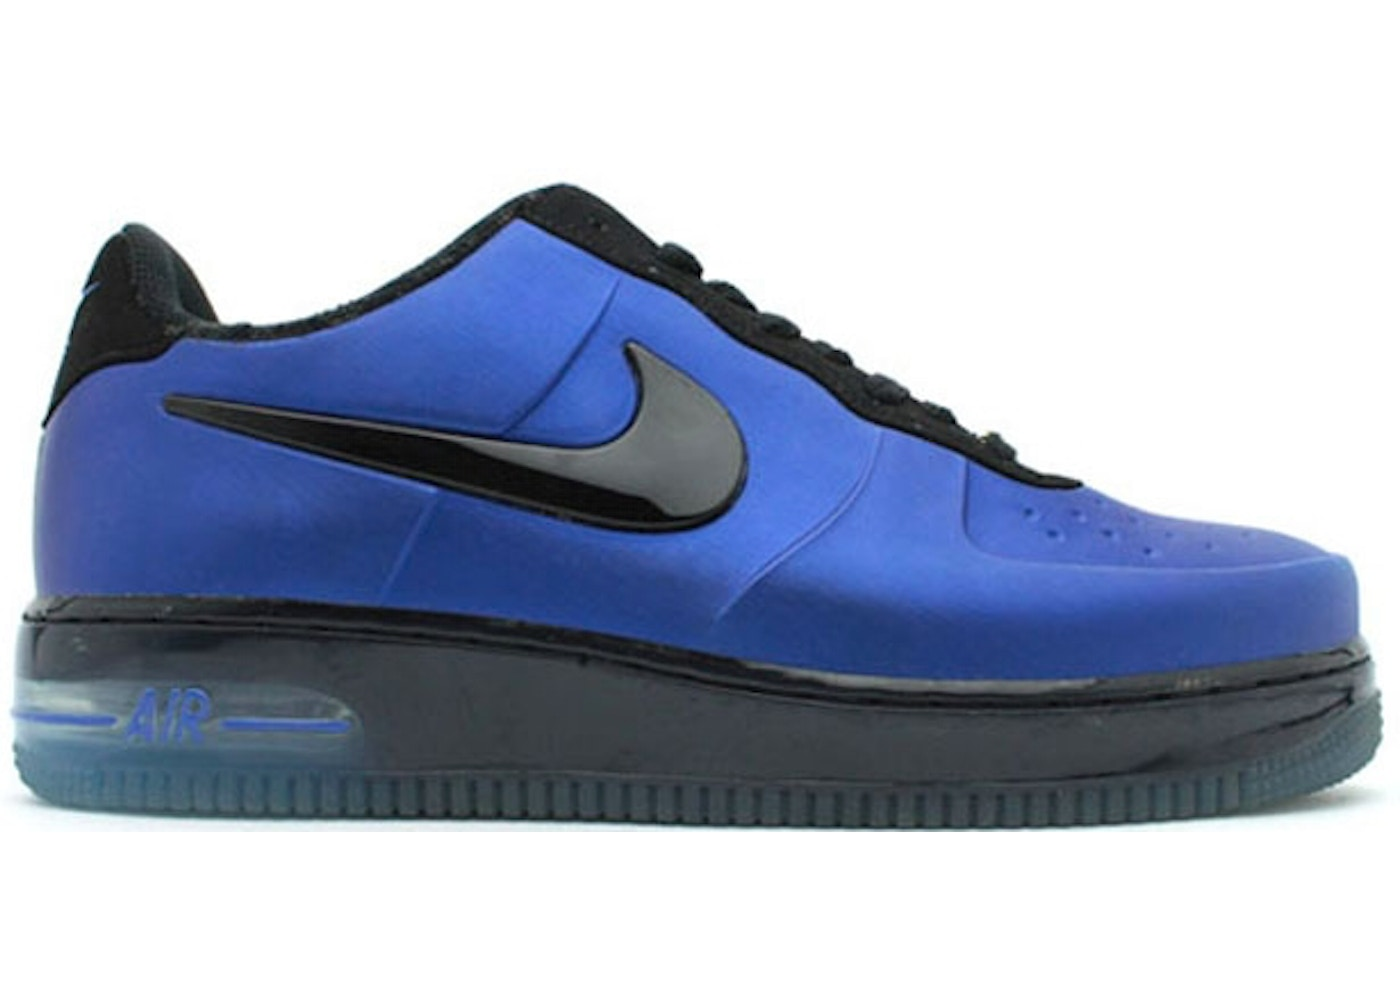 82aae63c277 Air Force 1 Low Foamposite Royal - 532461-400